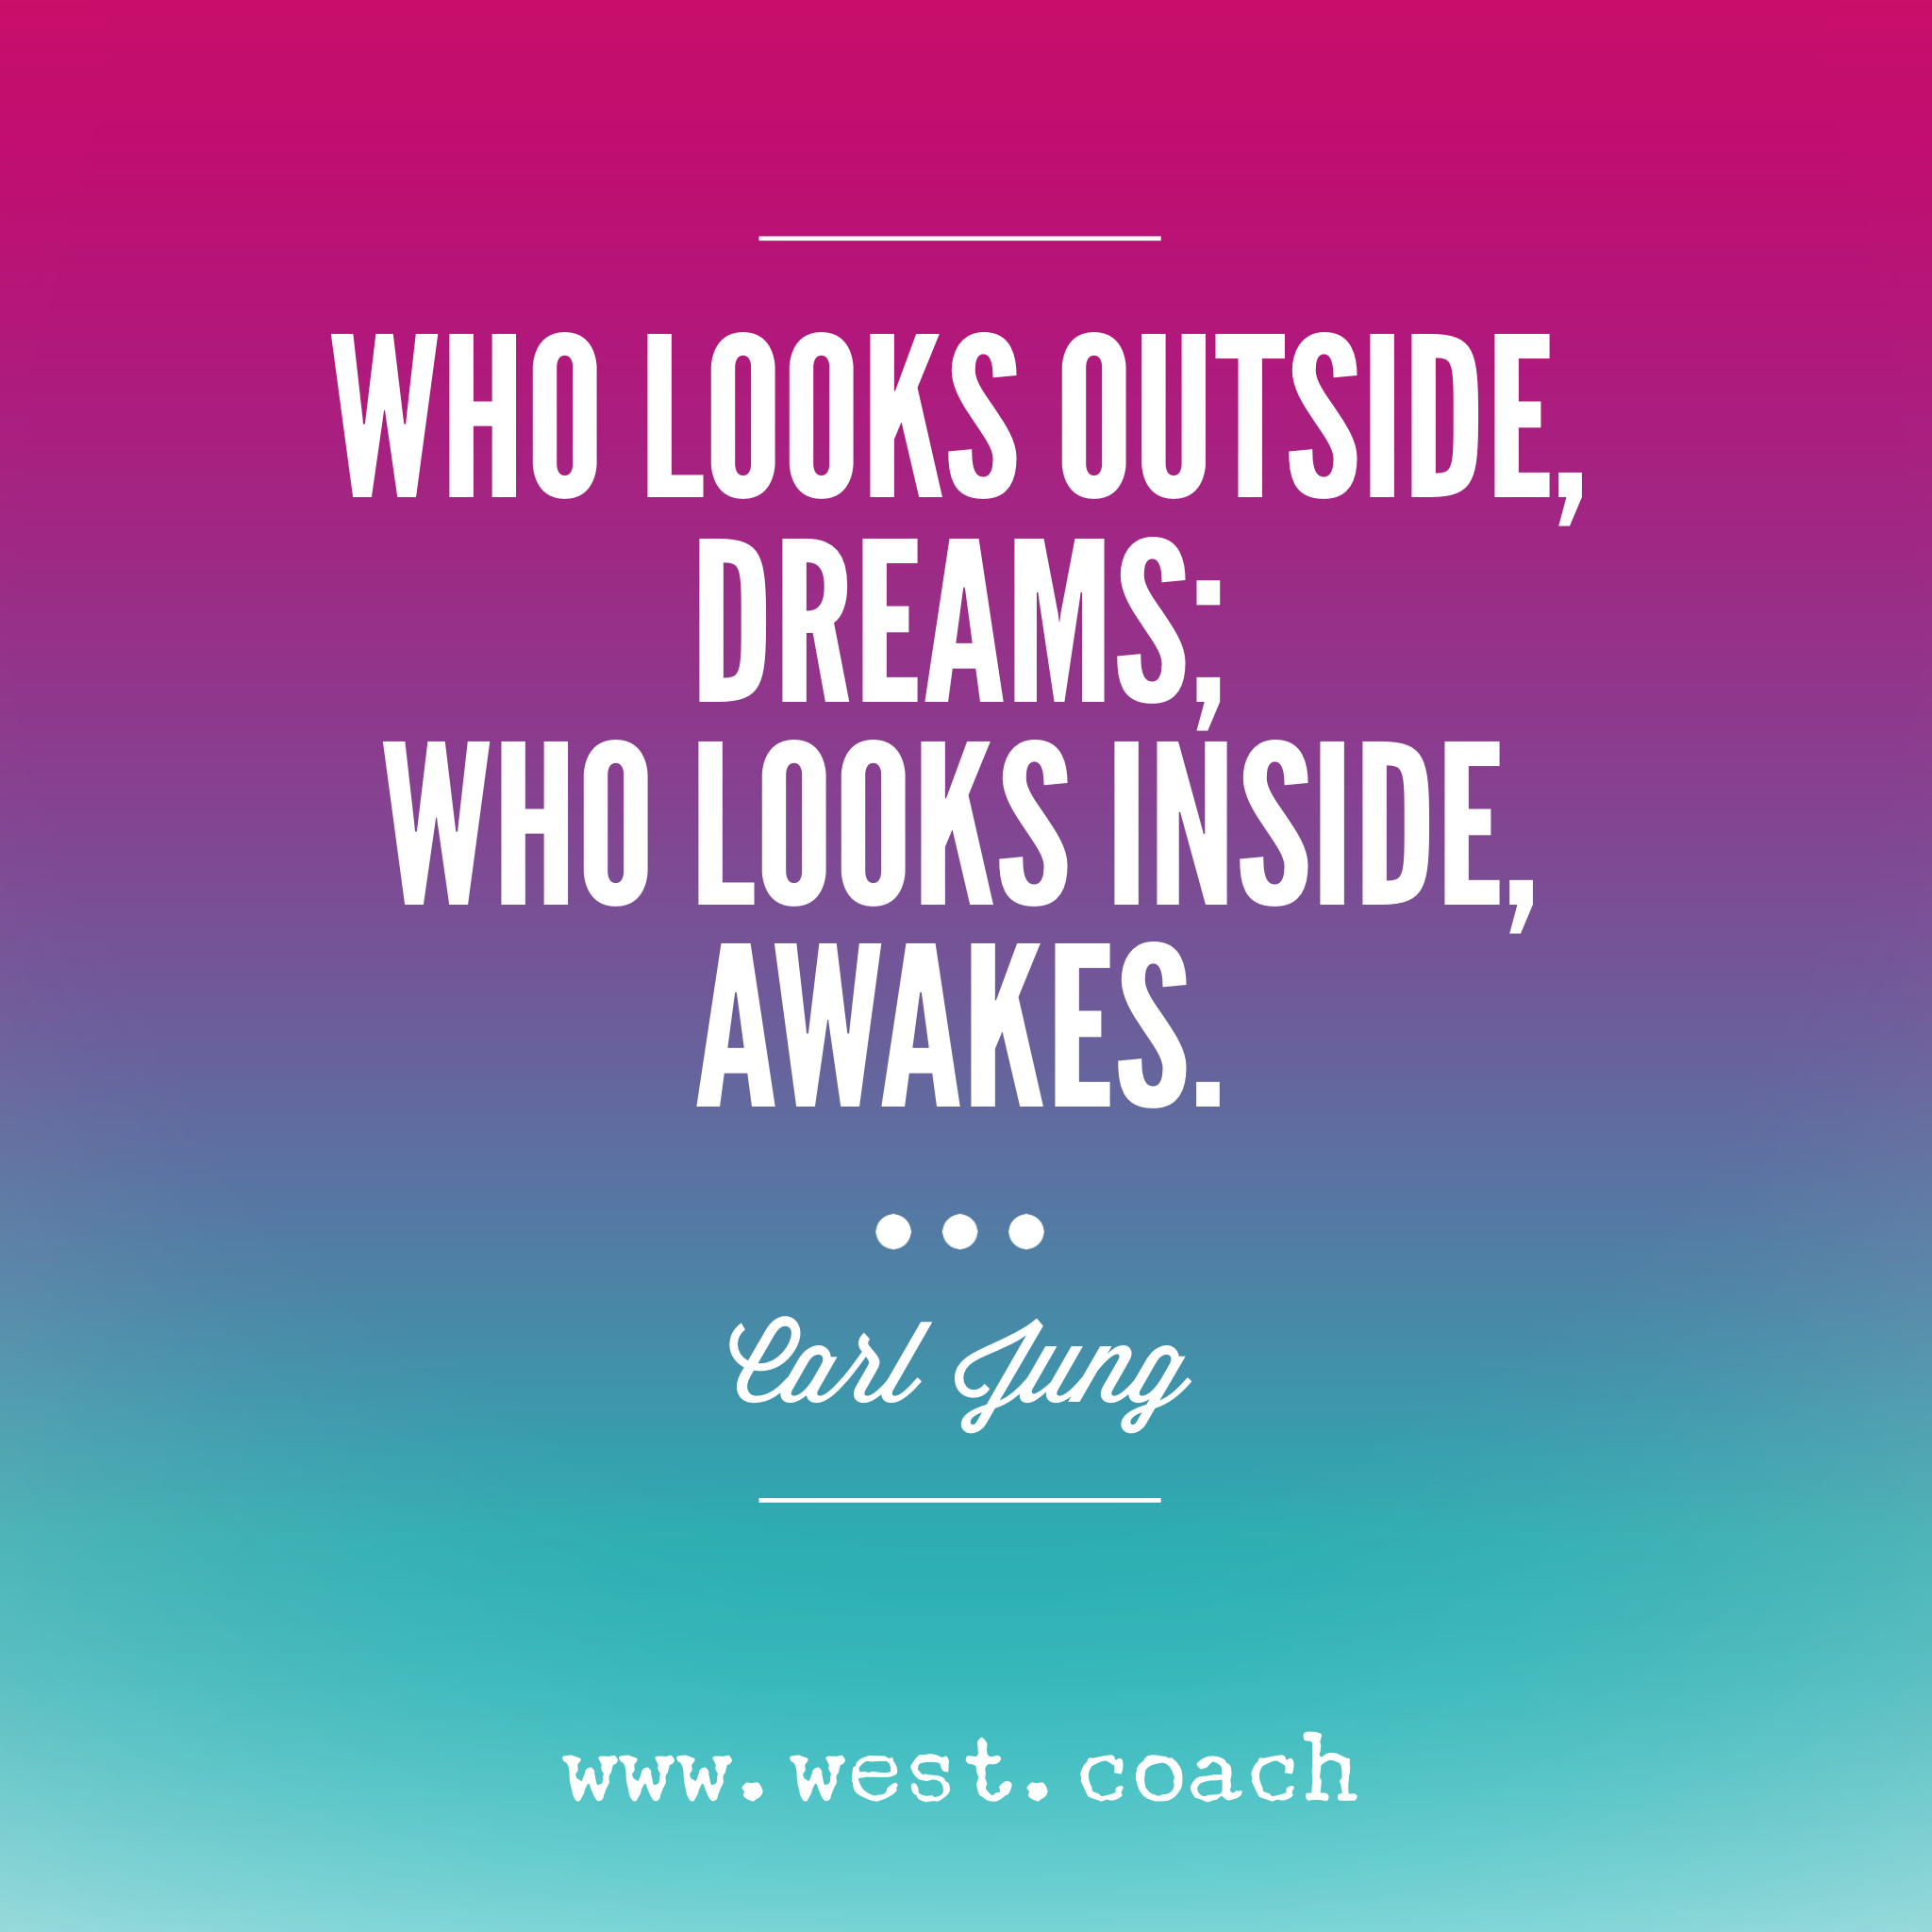 Life Coaching Quotes Who Looks Outside Dreams Who Looks Inside Awakes Carl Jung